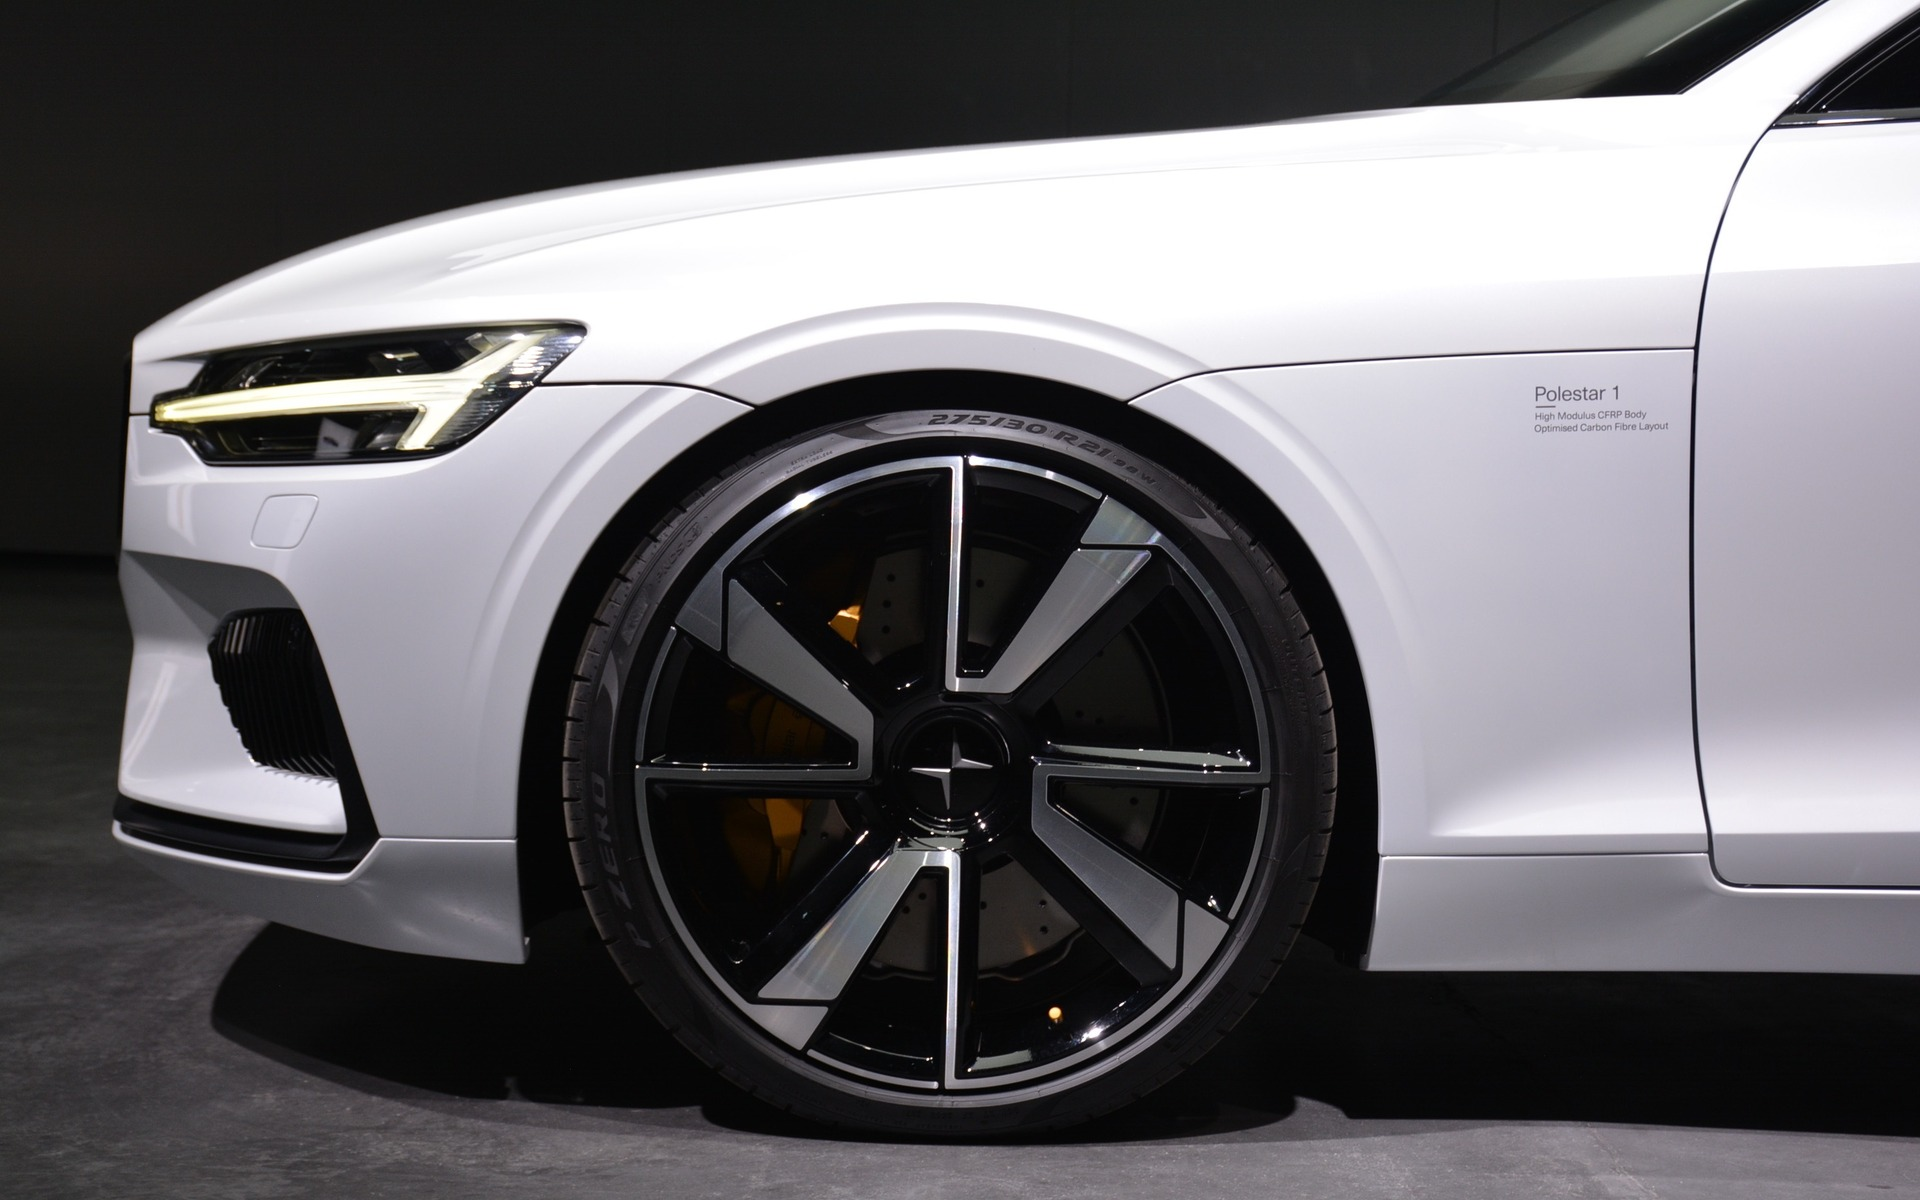 <p>The Polestar 1 halo car</p>